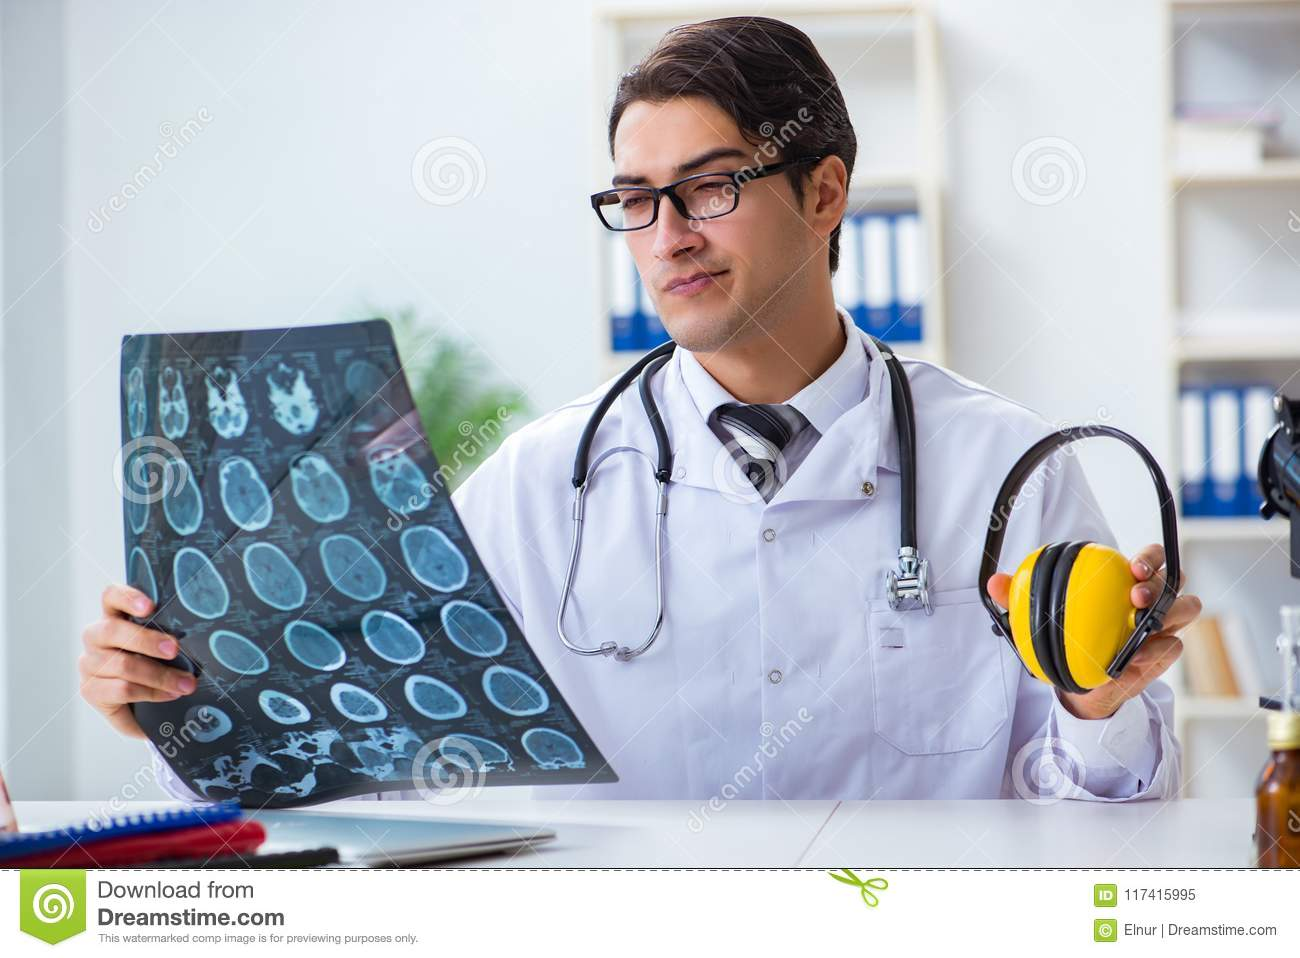 The safety doctor advising about noise cancelling headphones